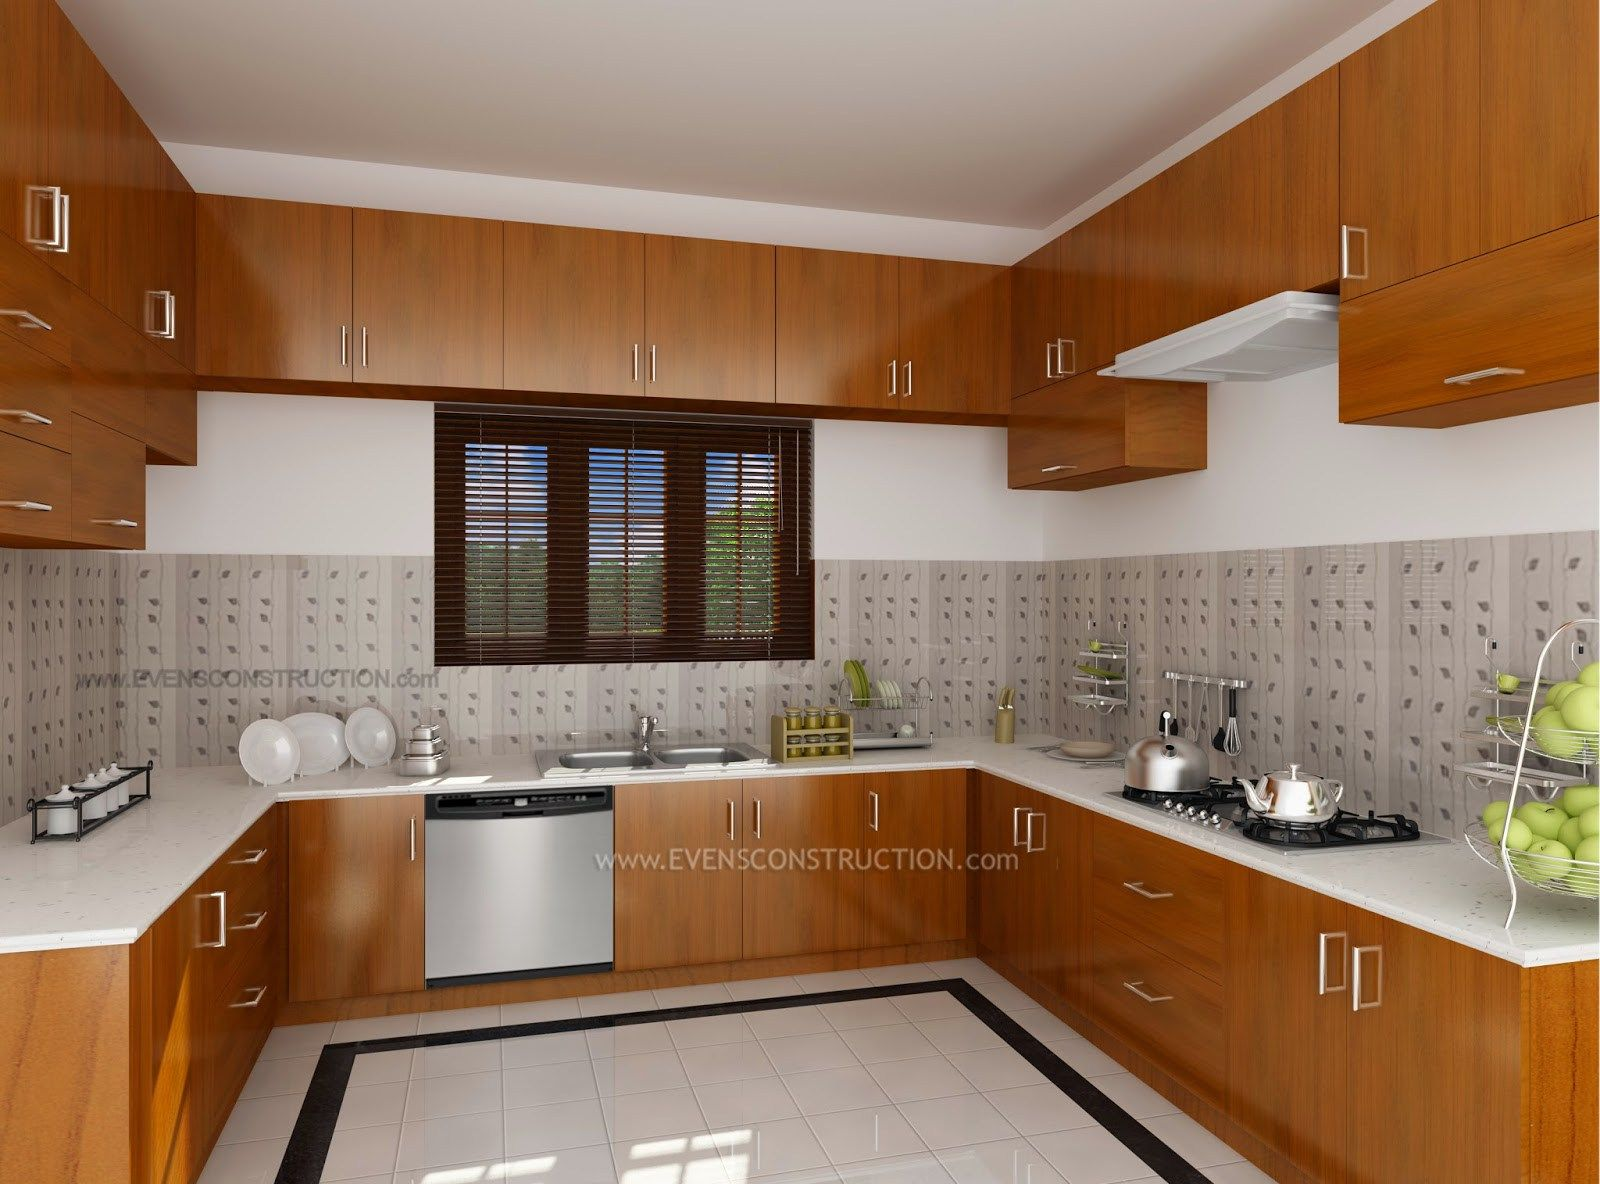 Design Interior Kitchen Home Kerala Modern House Kitchen Kitchen Dining Kitchen Interior Designs